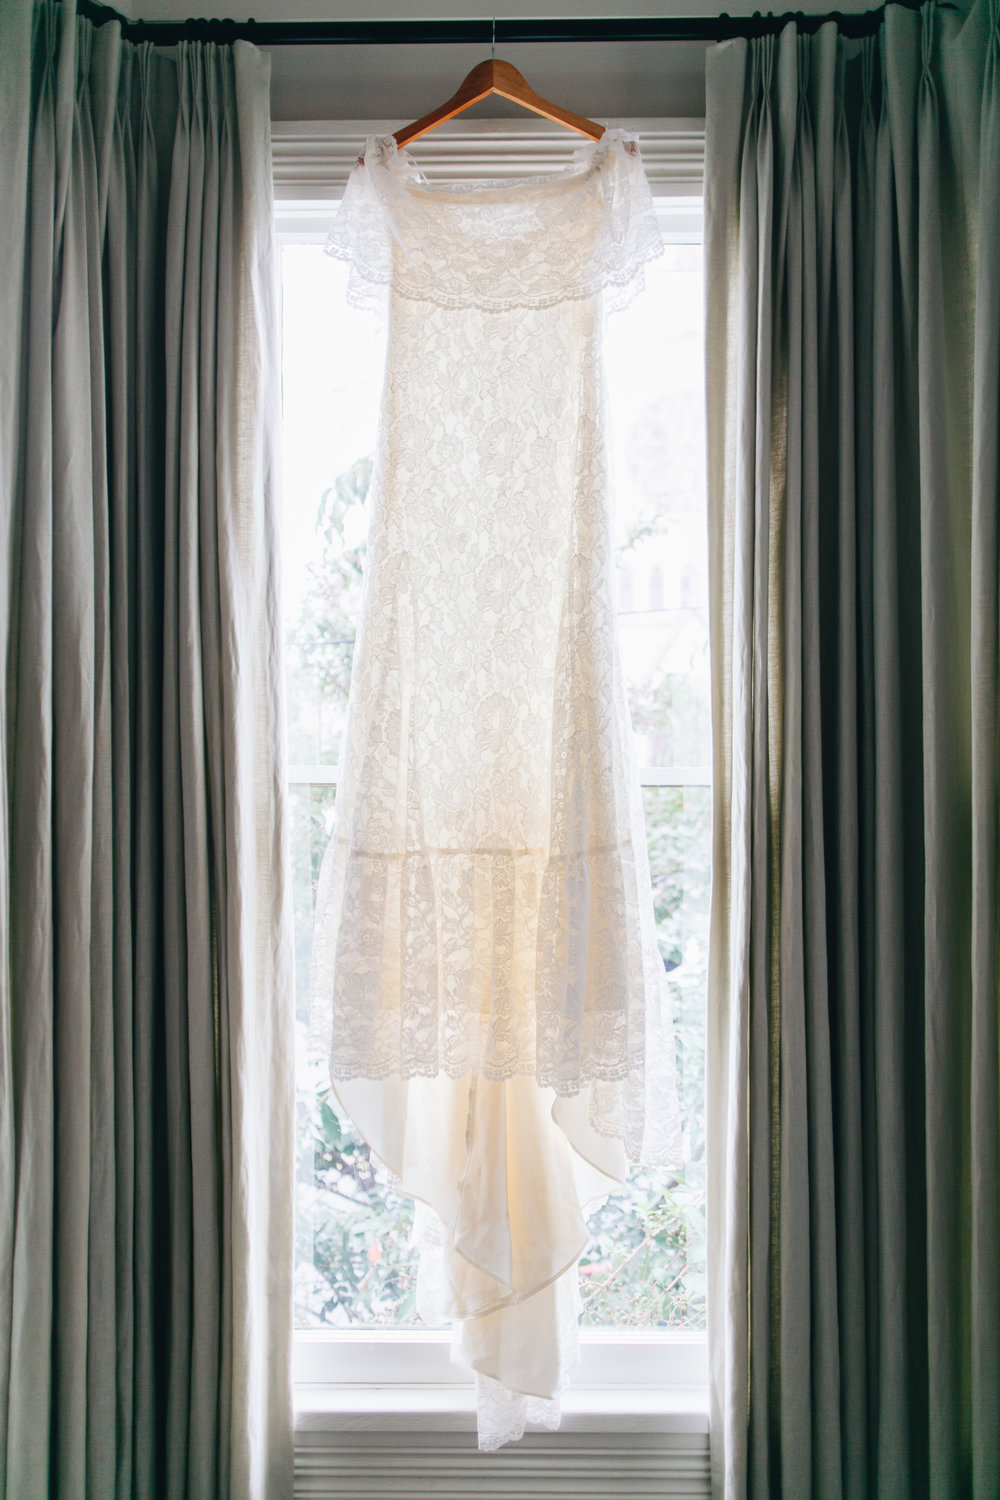 darling-juliet-photography-ivory-and-beau-bridal-boutique-savannah-wedding-dresses-savannah-bridal-gowns-daughters-of-simone-winnie-savannah-florist-boho-wedding-savannah-boho-wedding-roundhouse-railroad-musuem-wedding-3.jpg